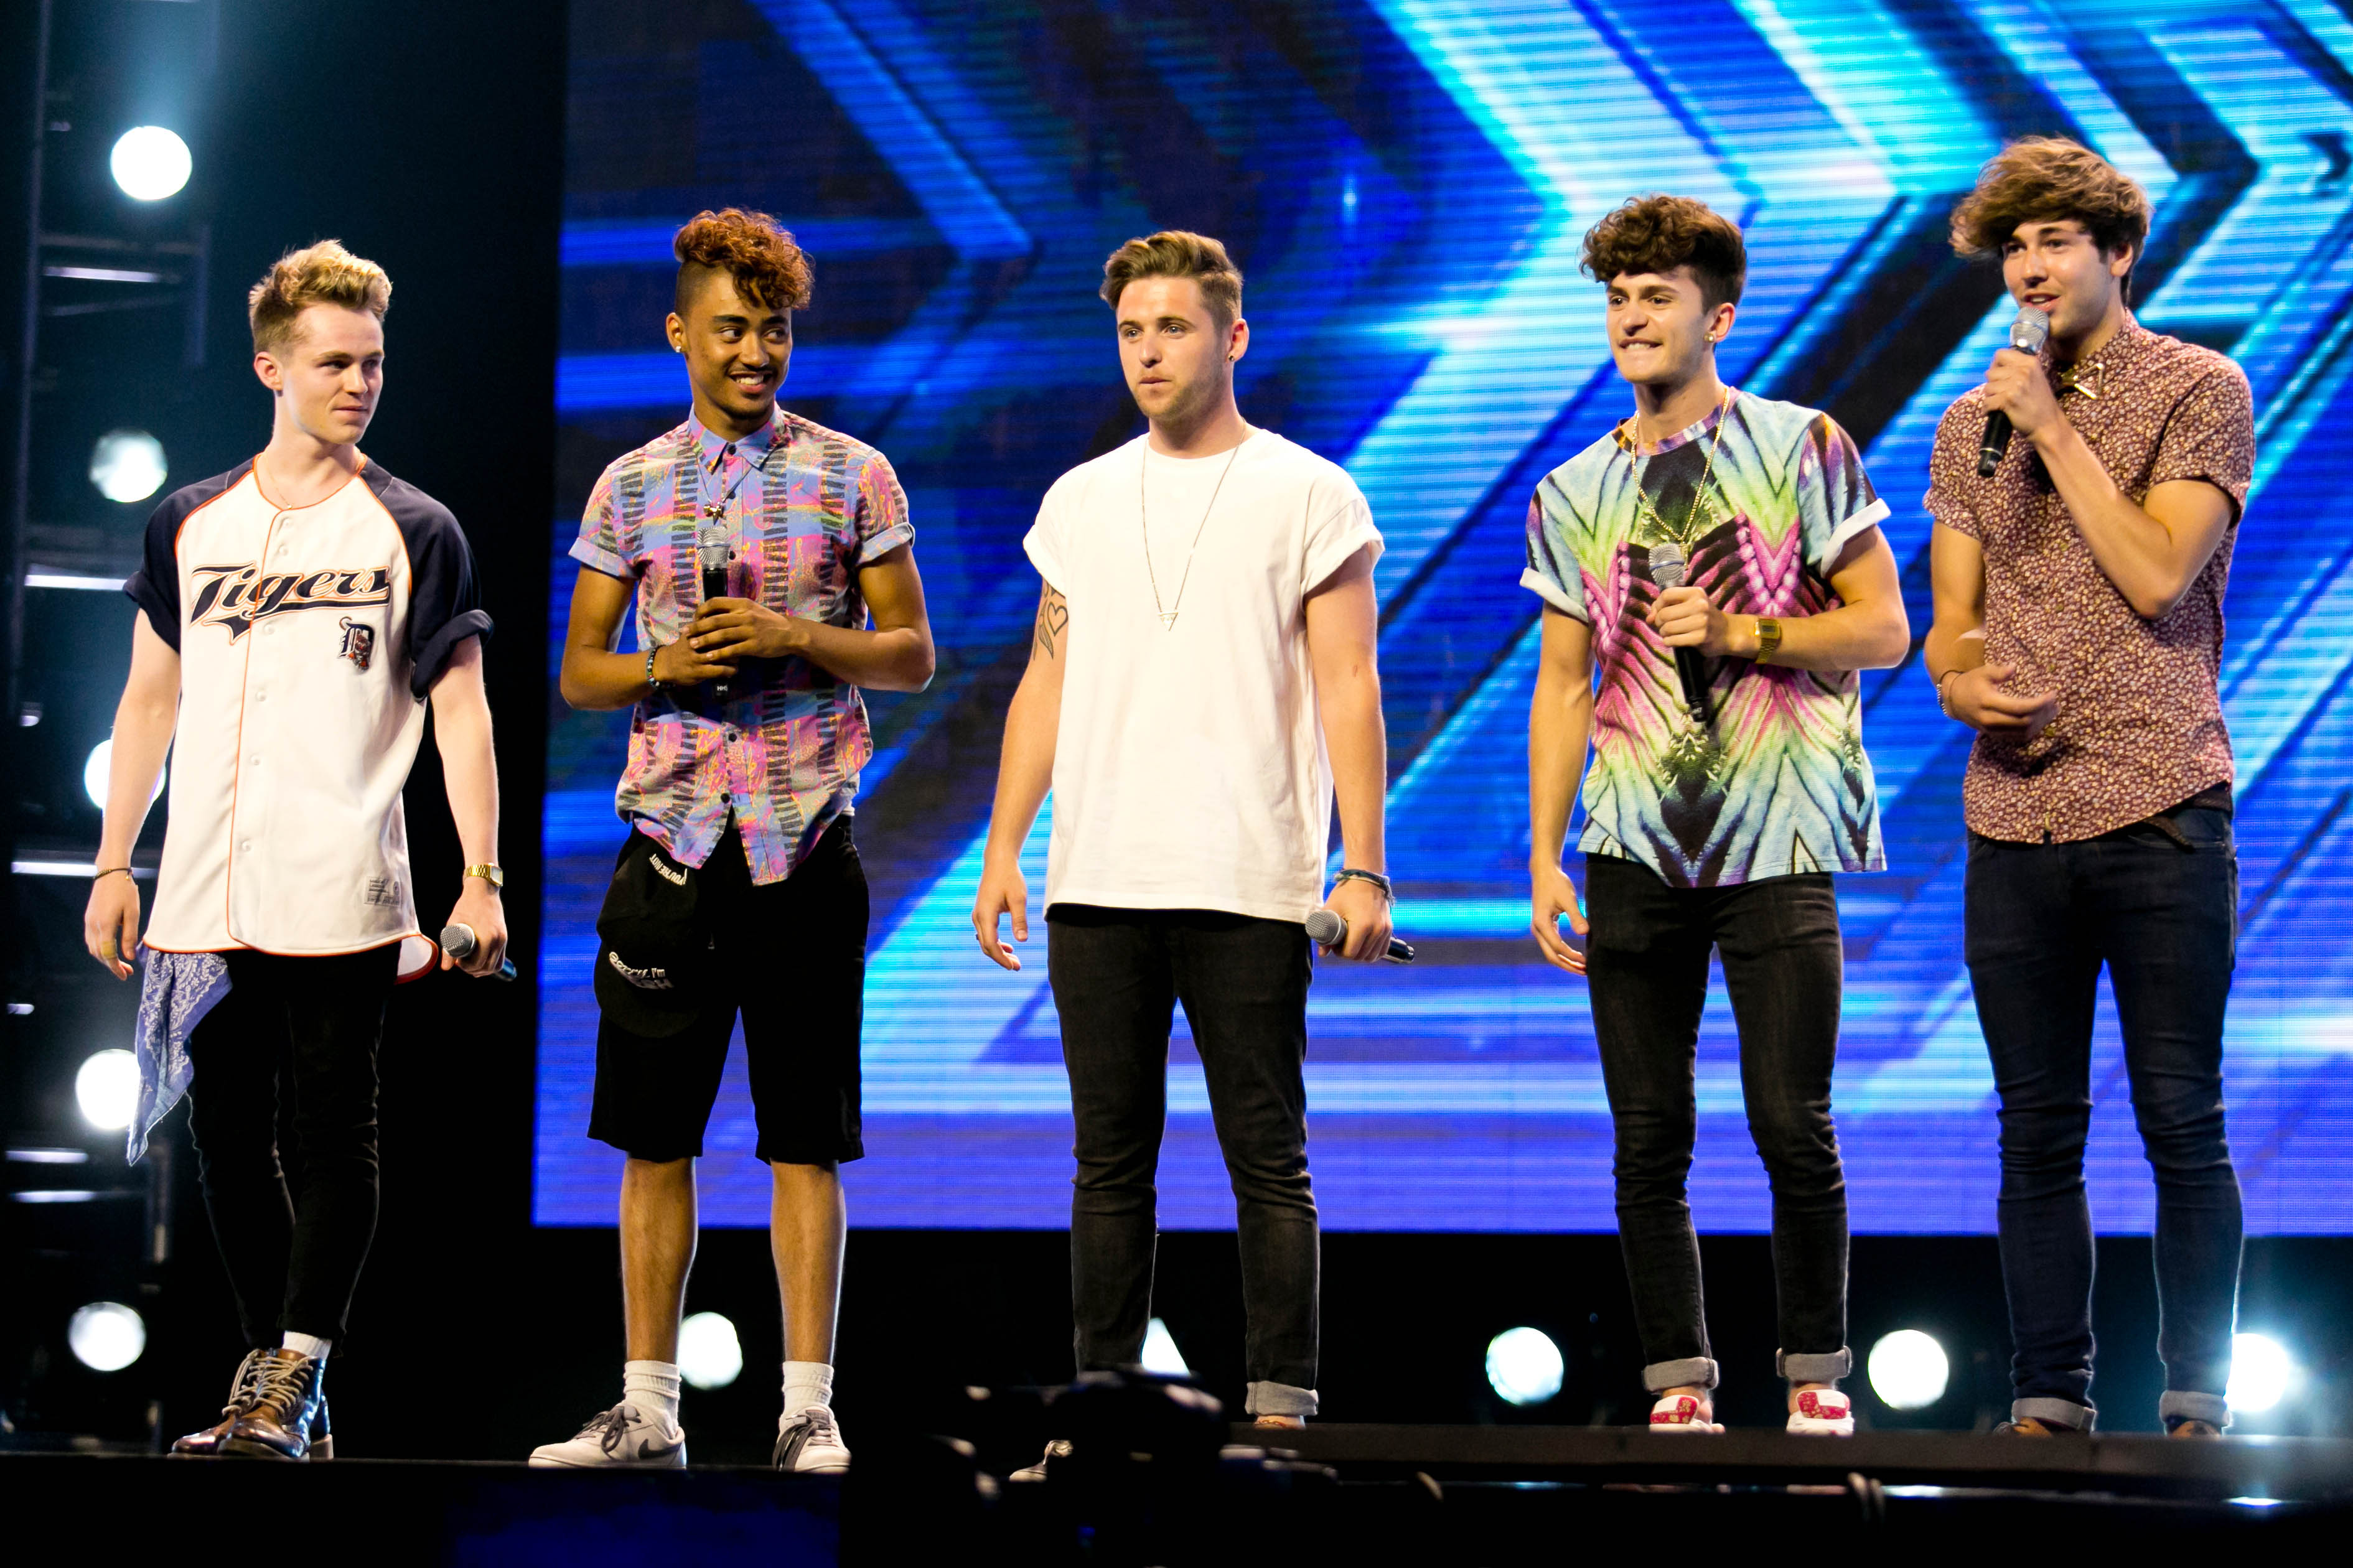 On a roll: The boys of Kingsland (Picture: TV)